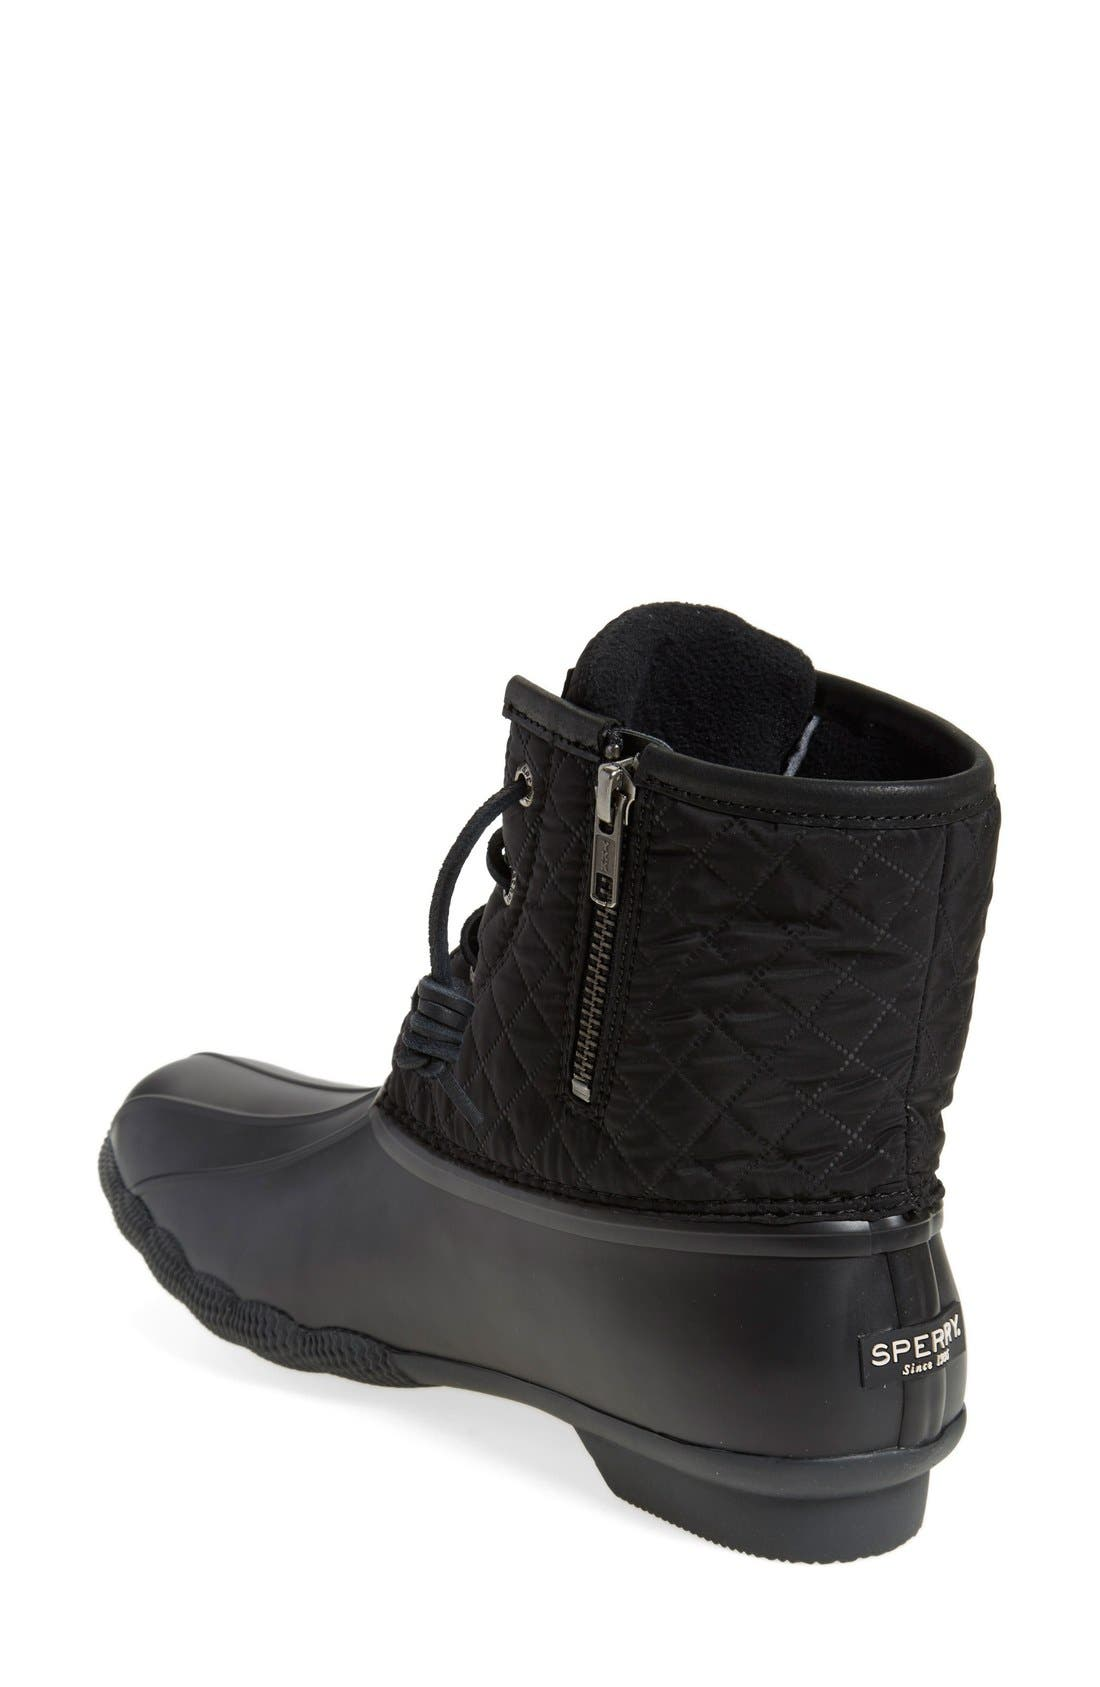 Alternate Image 2  - Sperry 'Saltwater - Quilted' Duck Boot (Women)